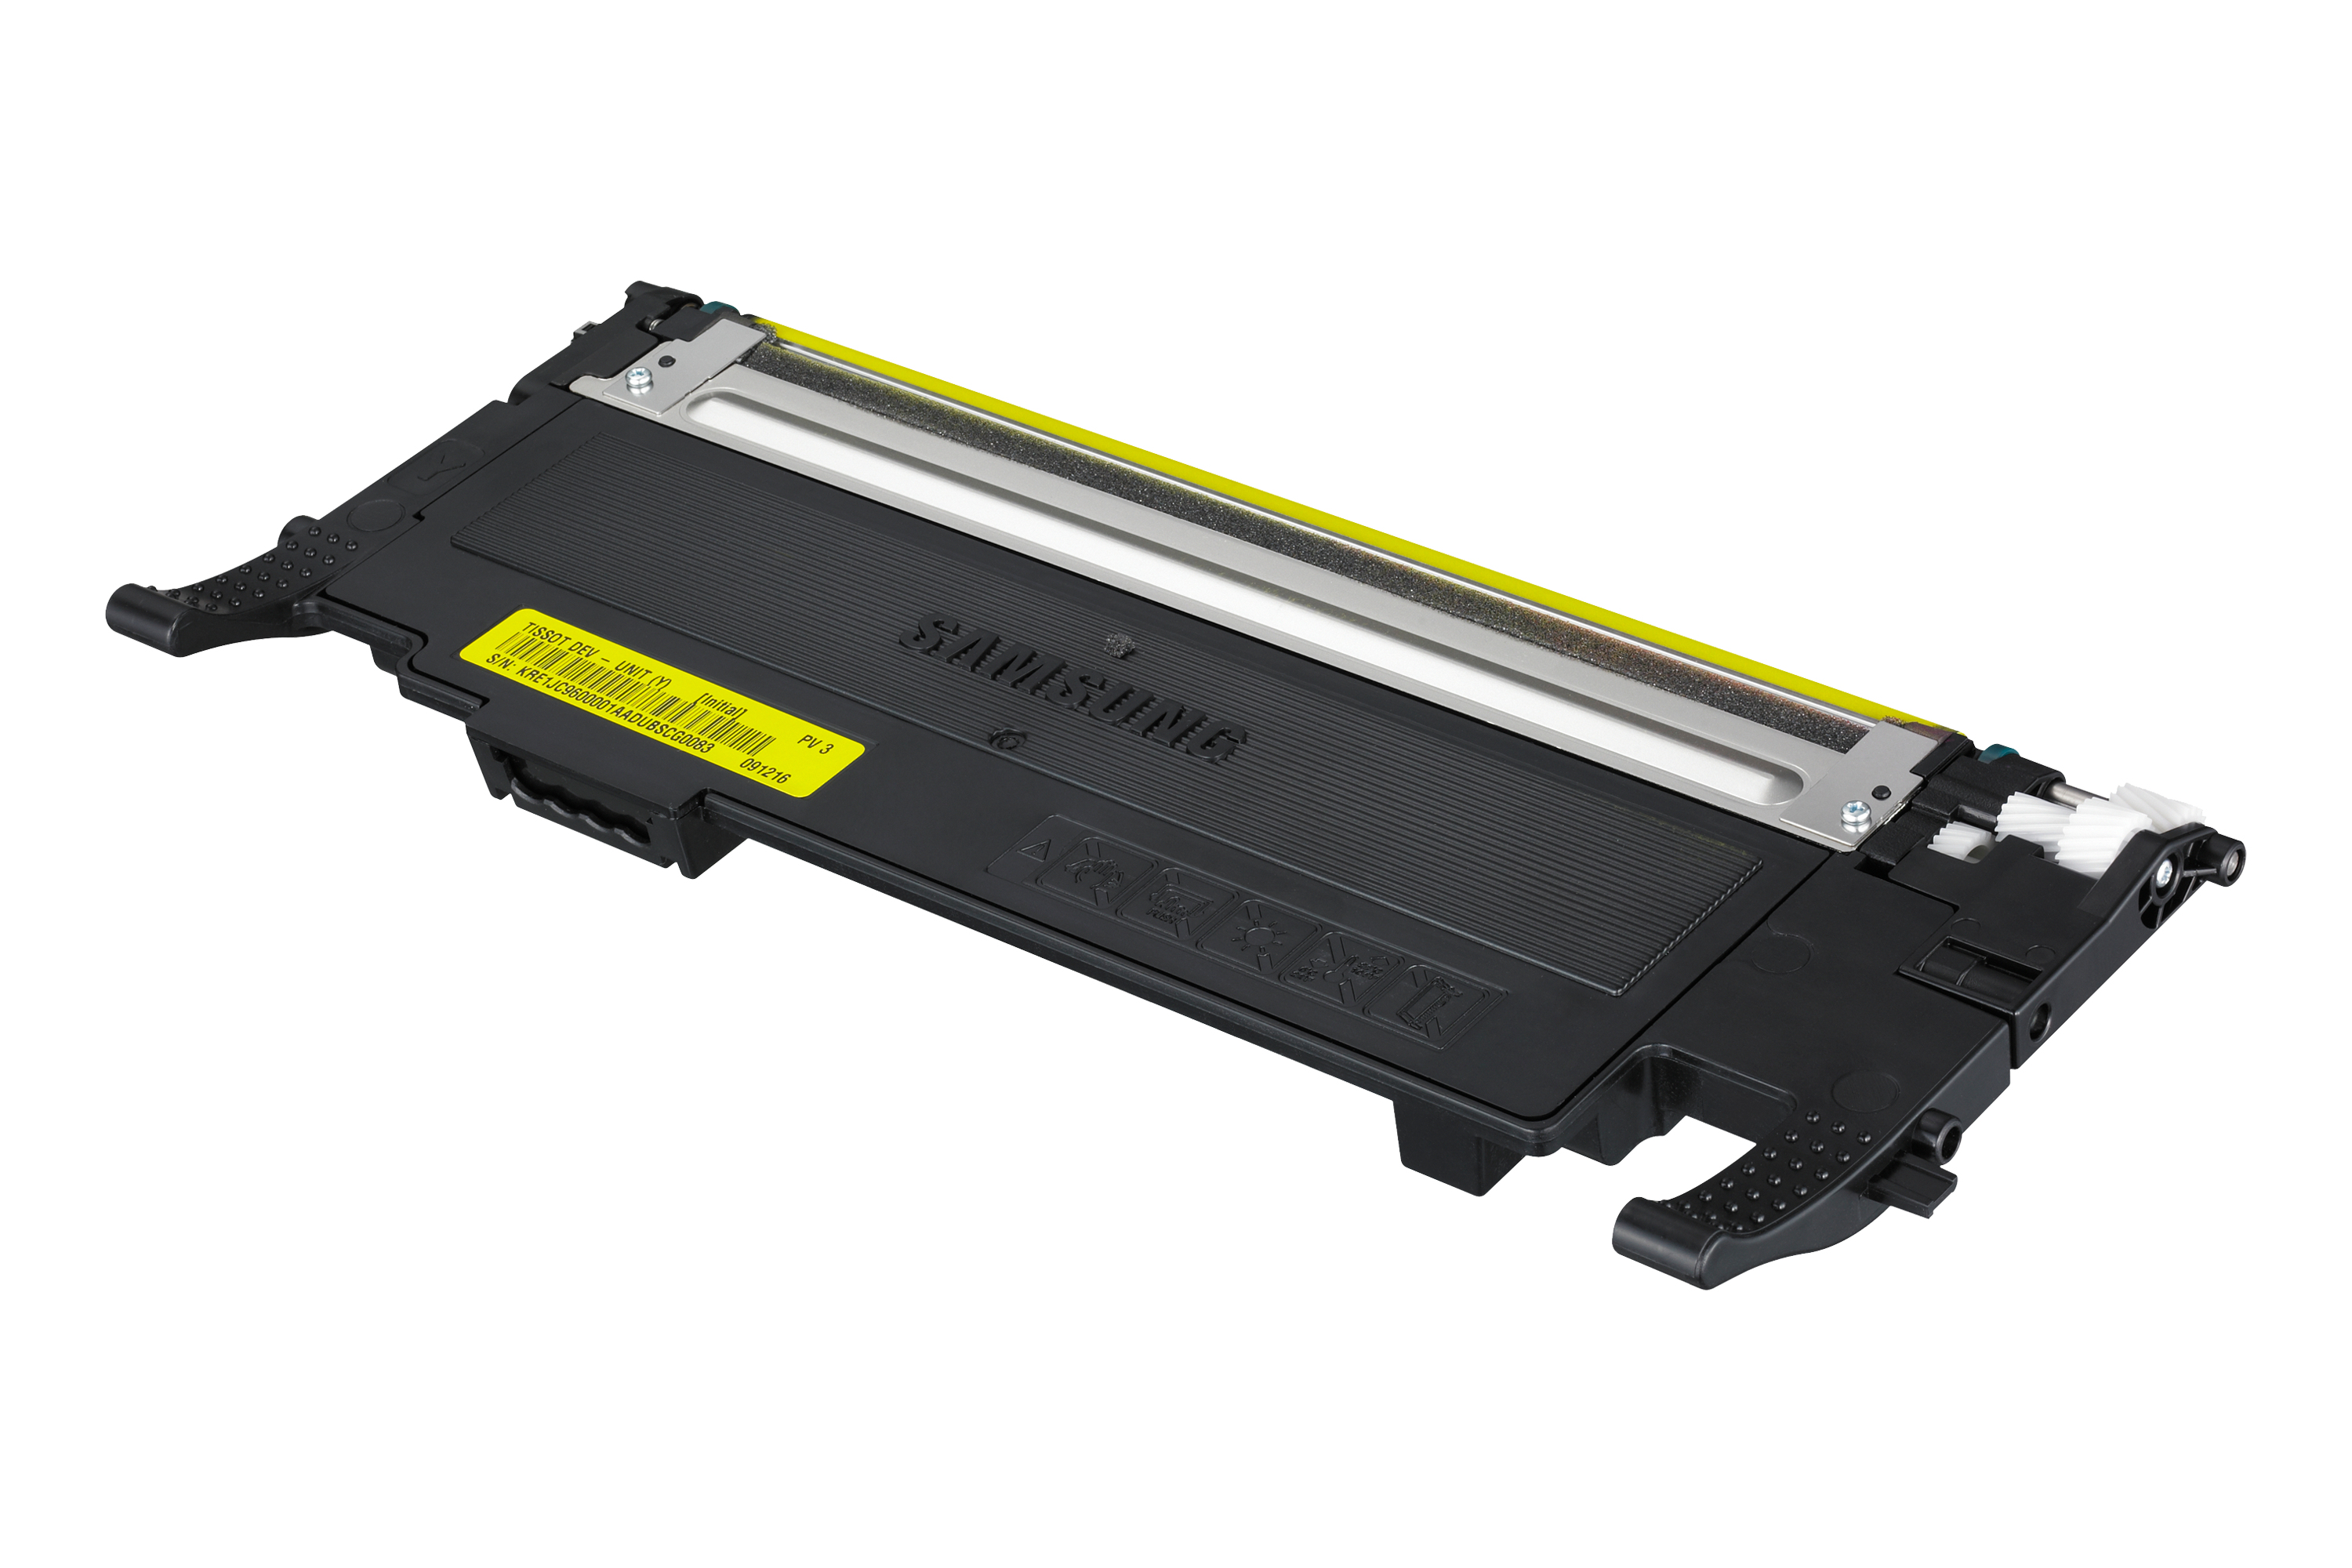 Remanufactured Samsung CLT-Y4092S Toner Cartridge Yellow 1k CLT-Y4092S - rem01